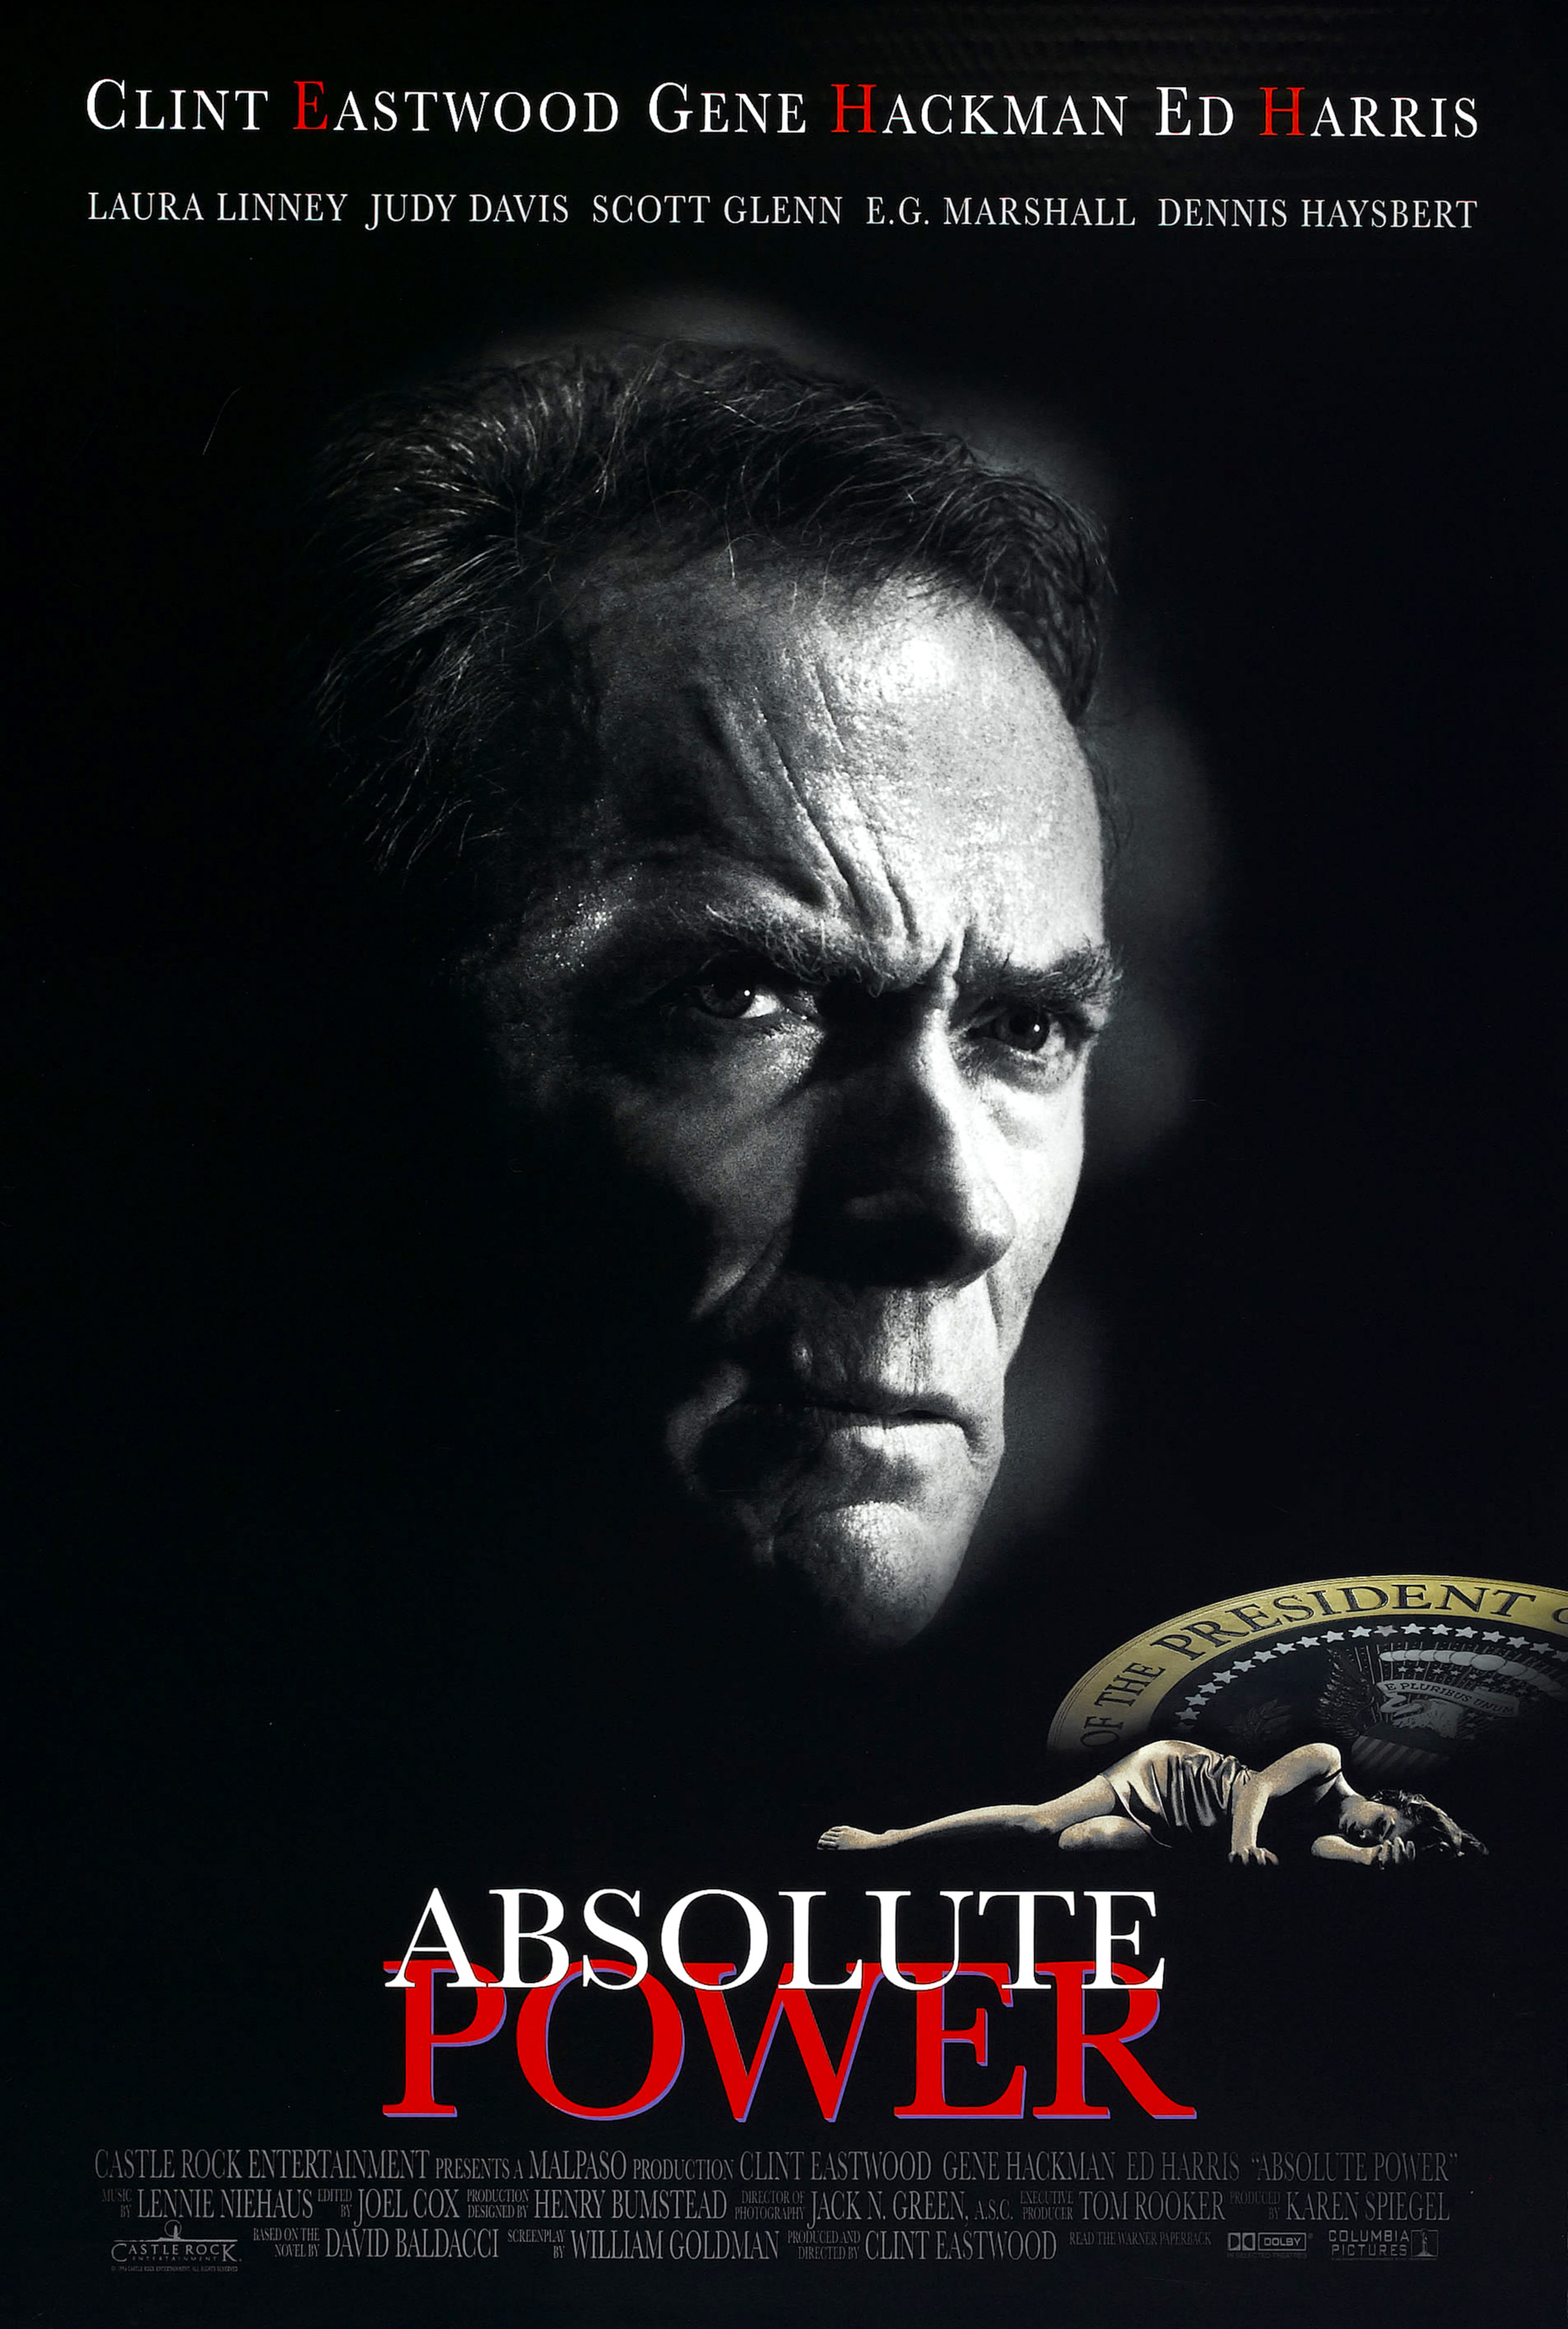 Absolute Power 1997 DivX WS DVDrip Subs.